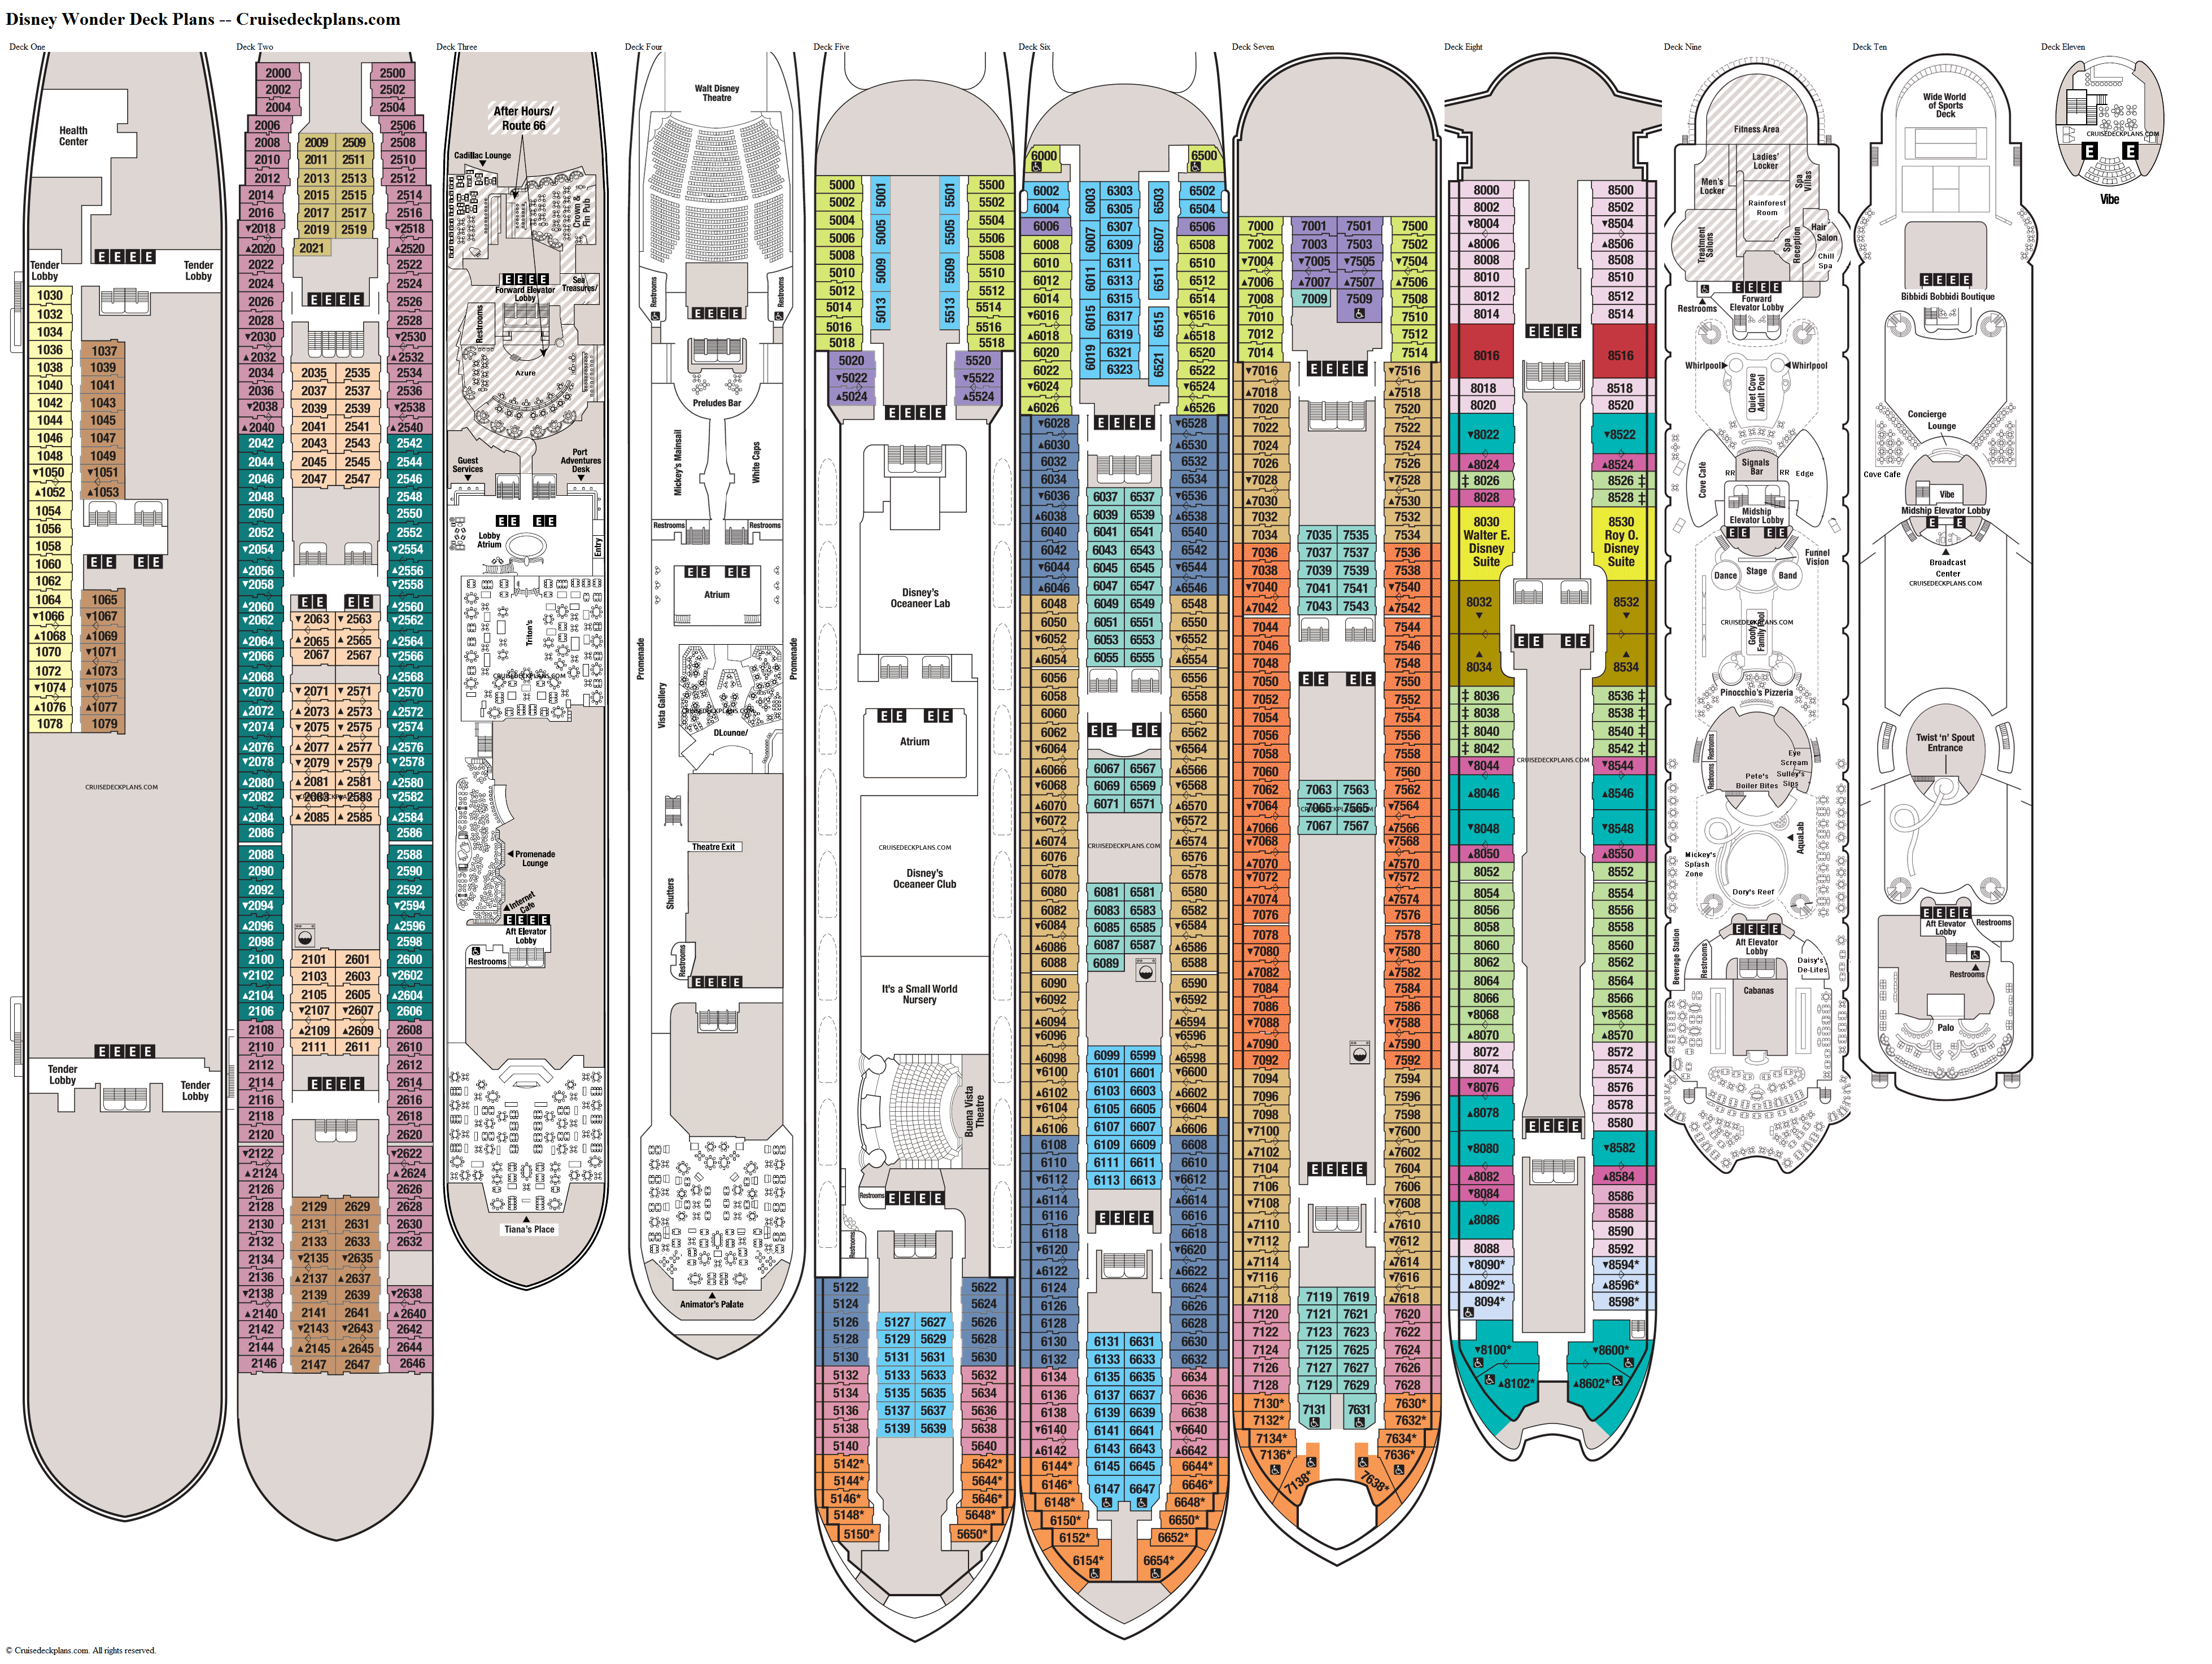 Disney Wonder deck plans image